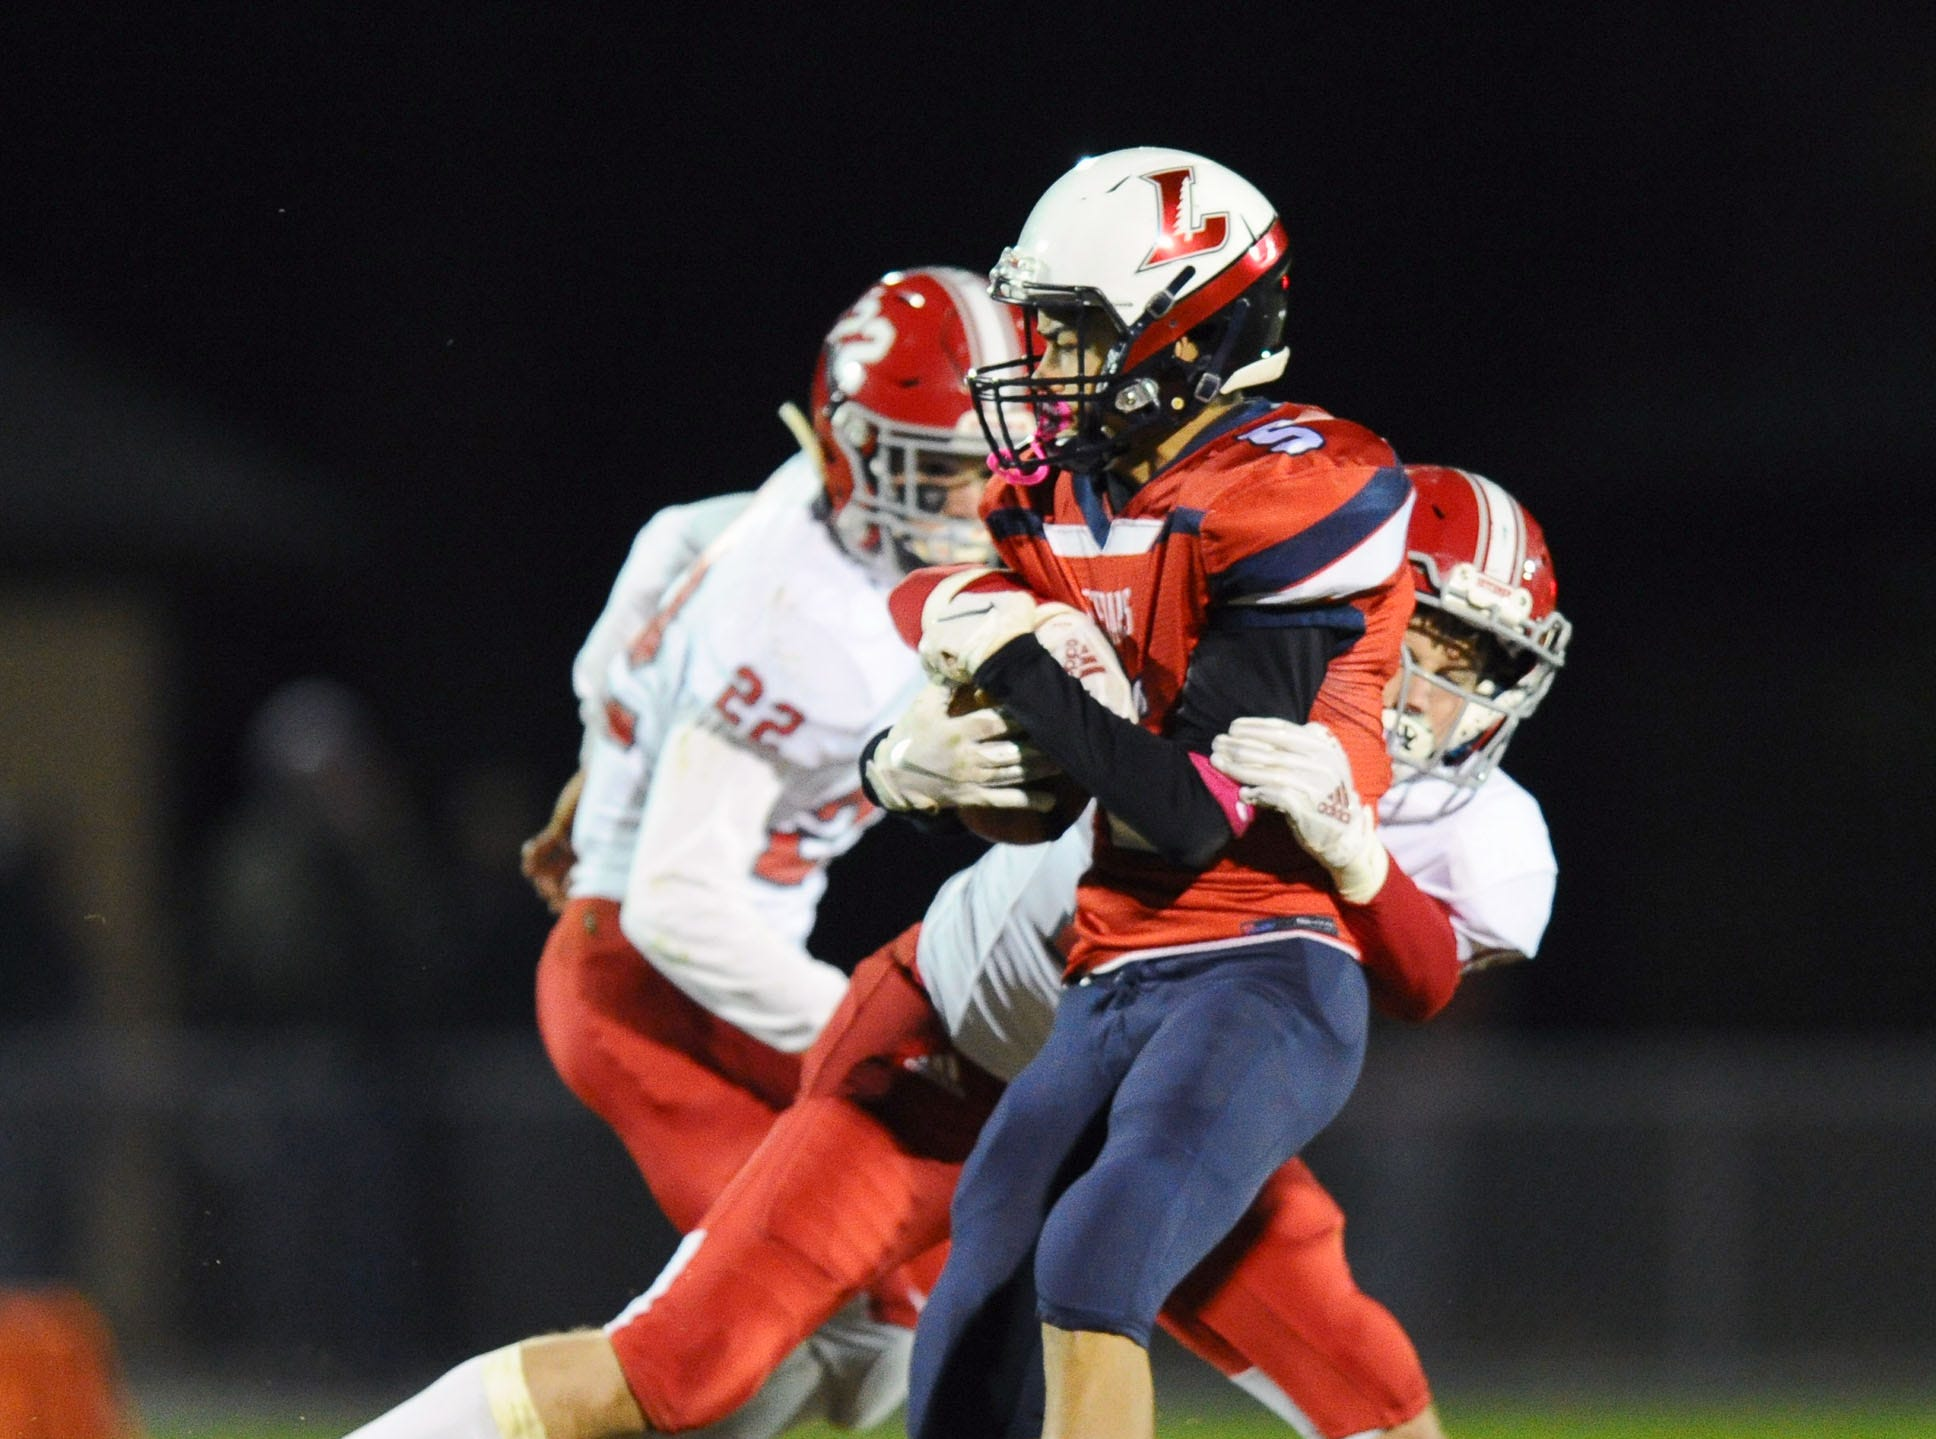 Lebanon's Alexander Rufe (5) runs for a first down as A-C's Daniel Tobias(19) tries to bring him down.